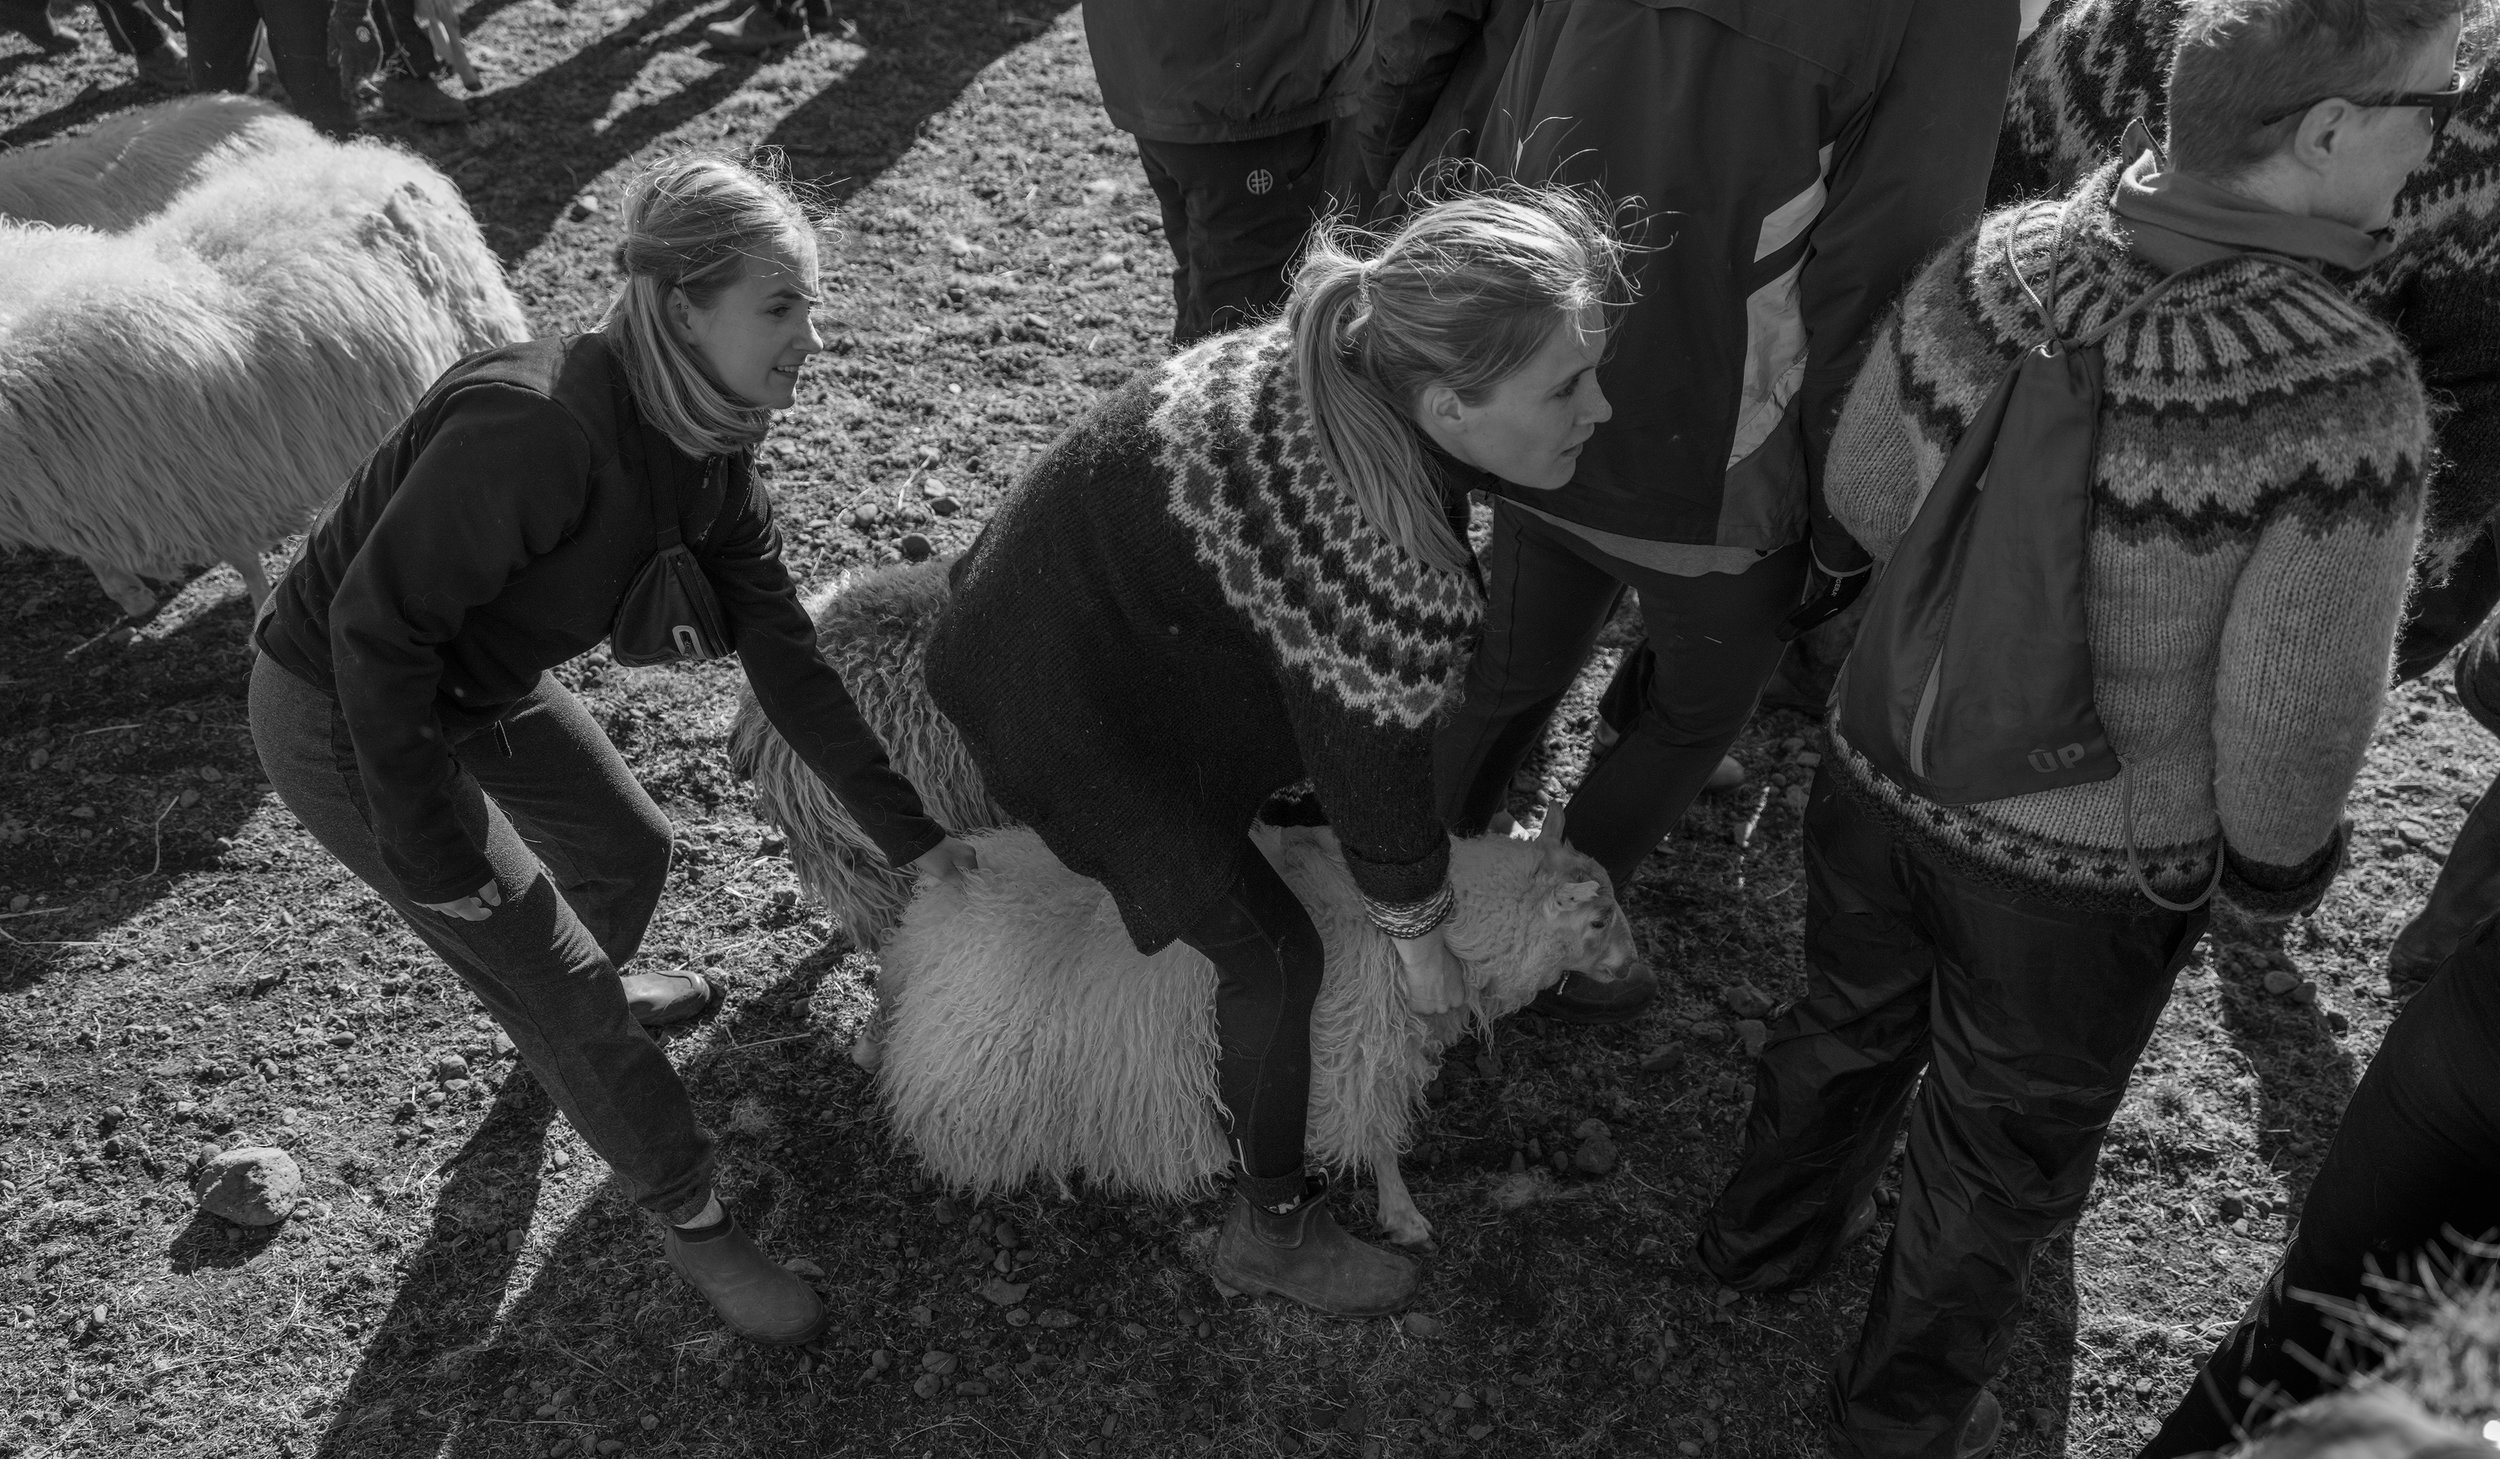 Pálína moving one of her sheep to the gate.